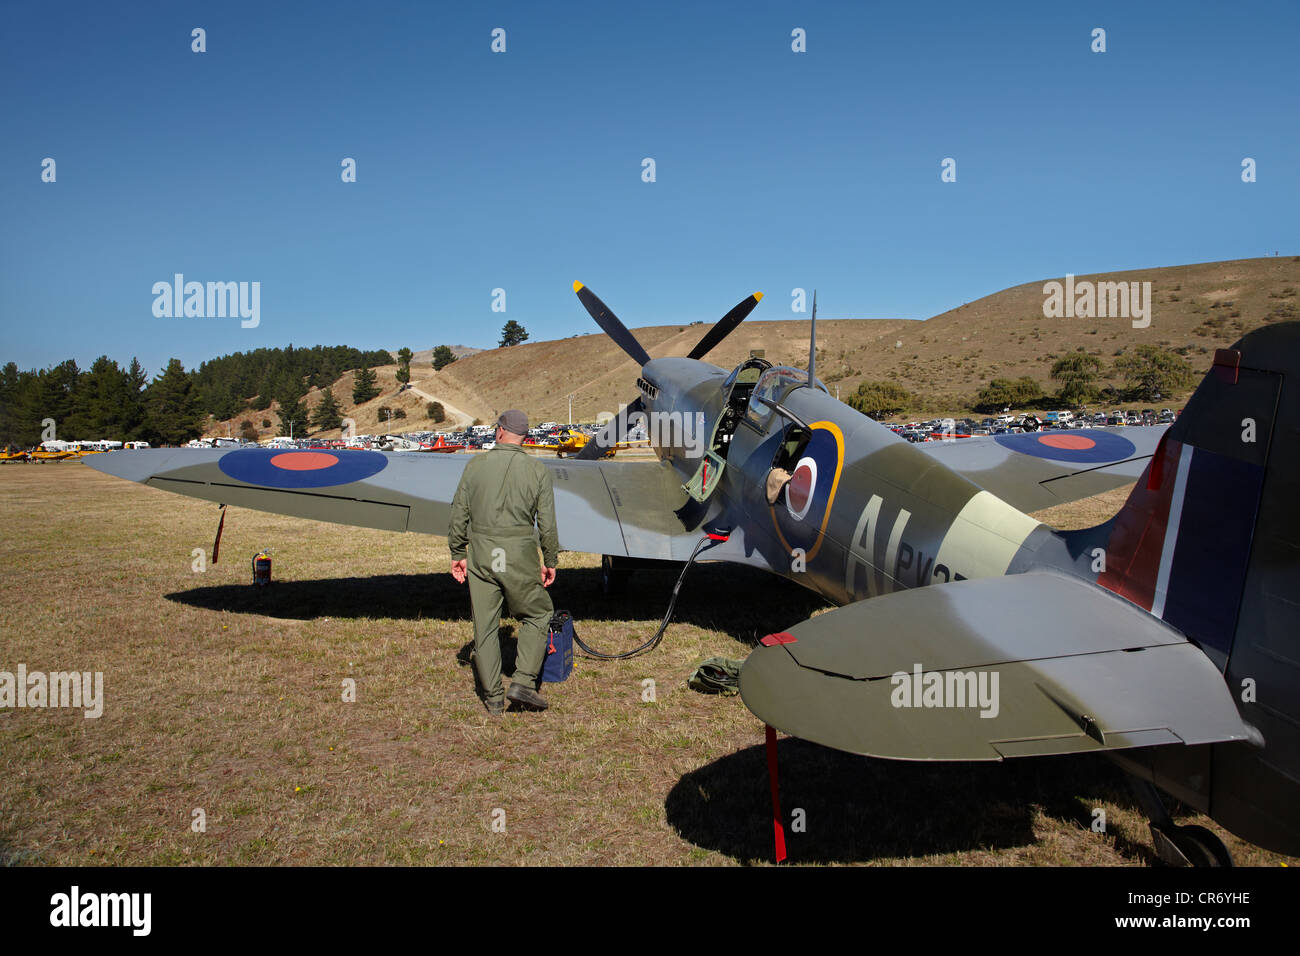 Supermarine Spitfire - British and allied WWII Fighter Plane, Warbirds over Wanaka, South Island, New Zealand - Stock Image